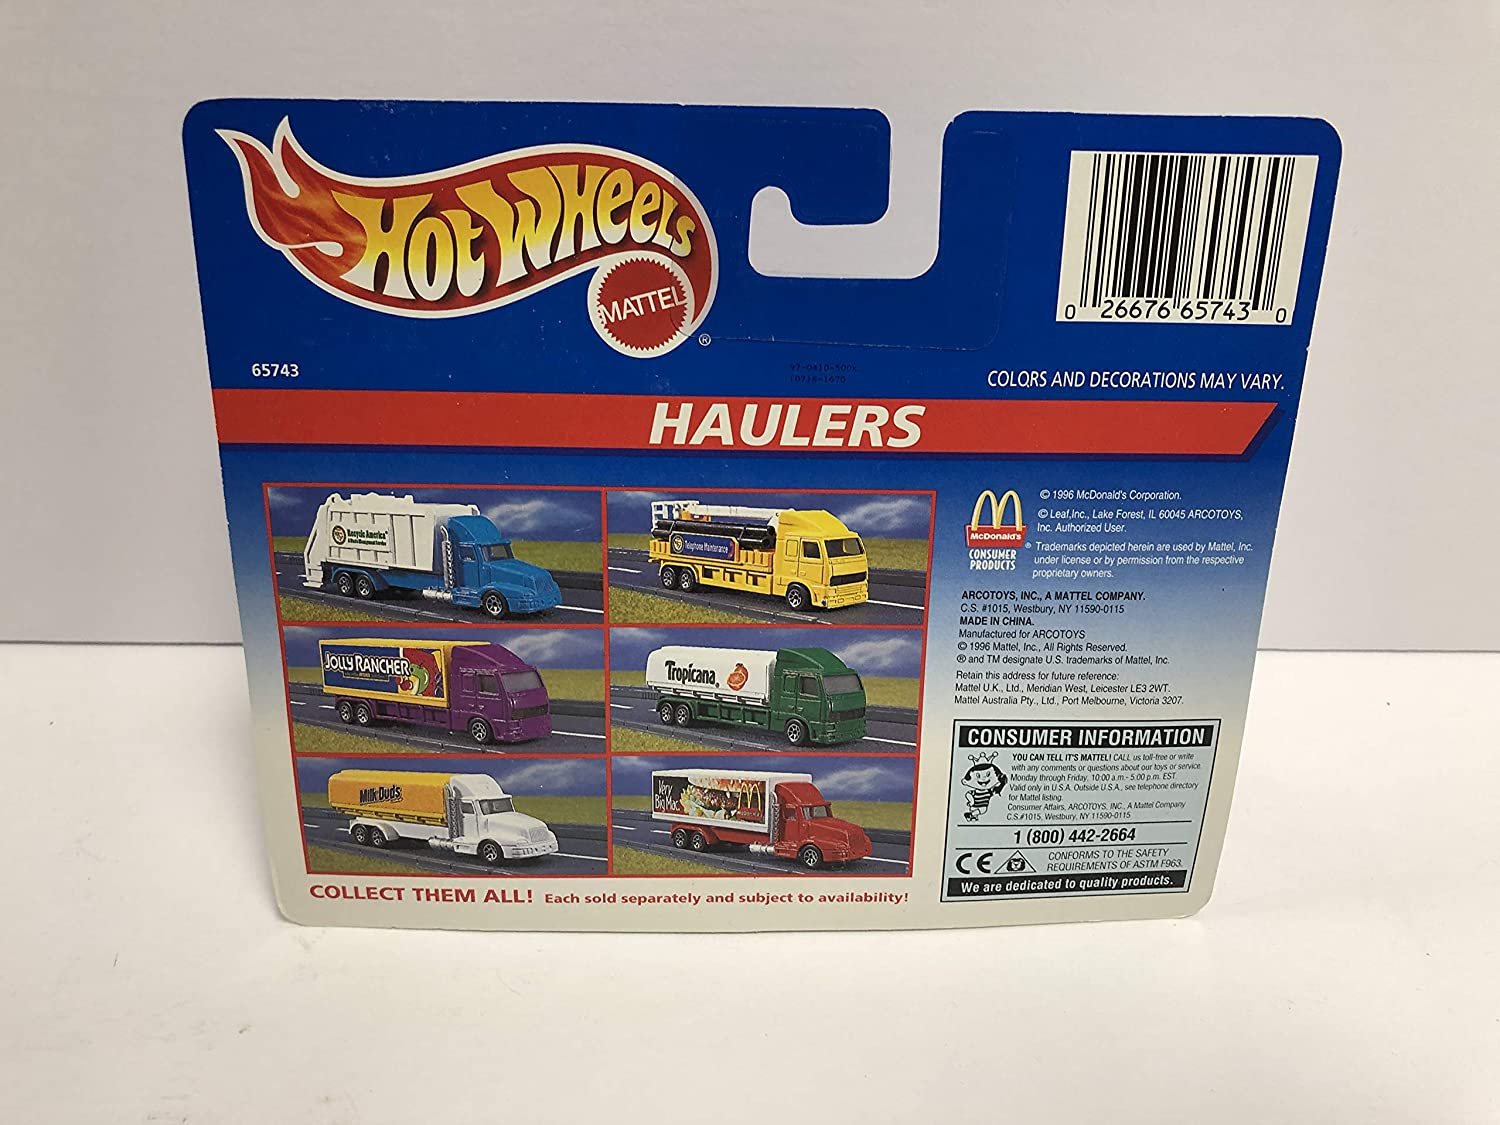 Haulers McDONALDS BIG MAC 1997 Mattel Hot Wheels diecast